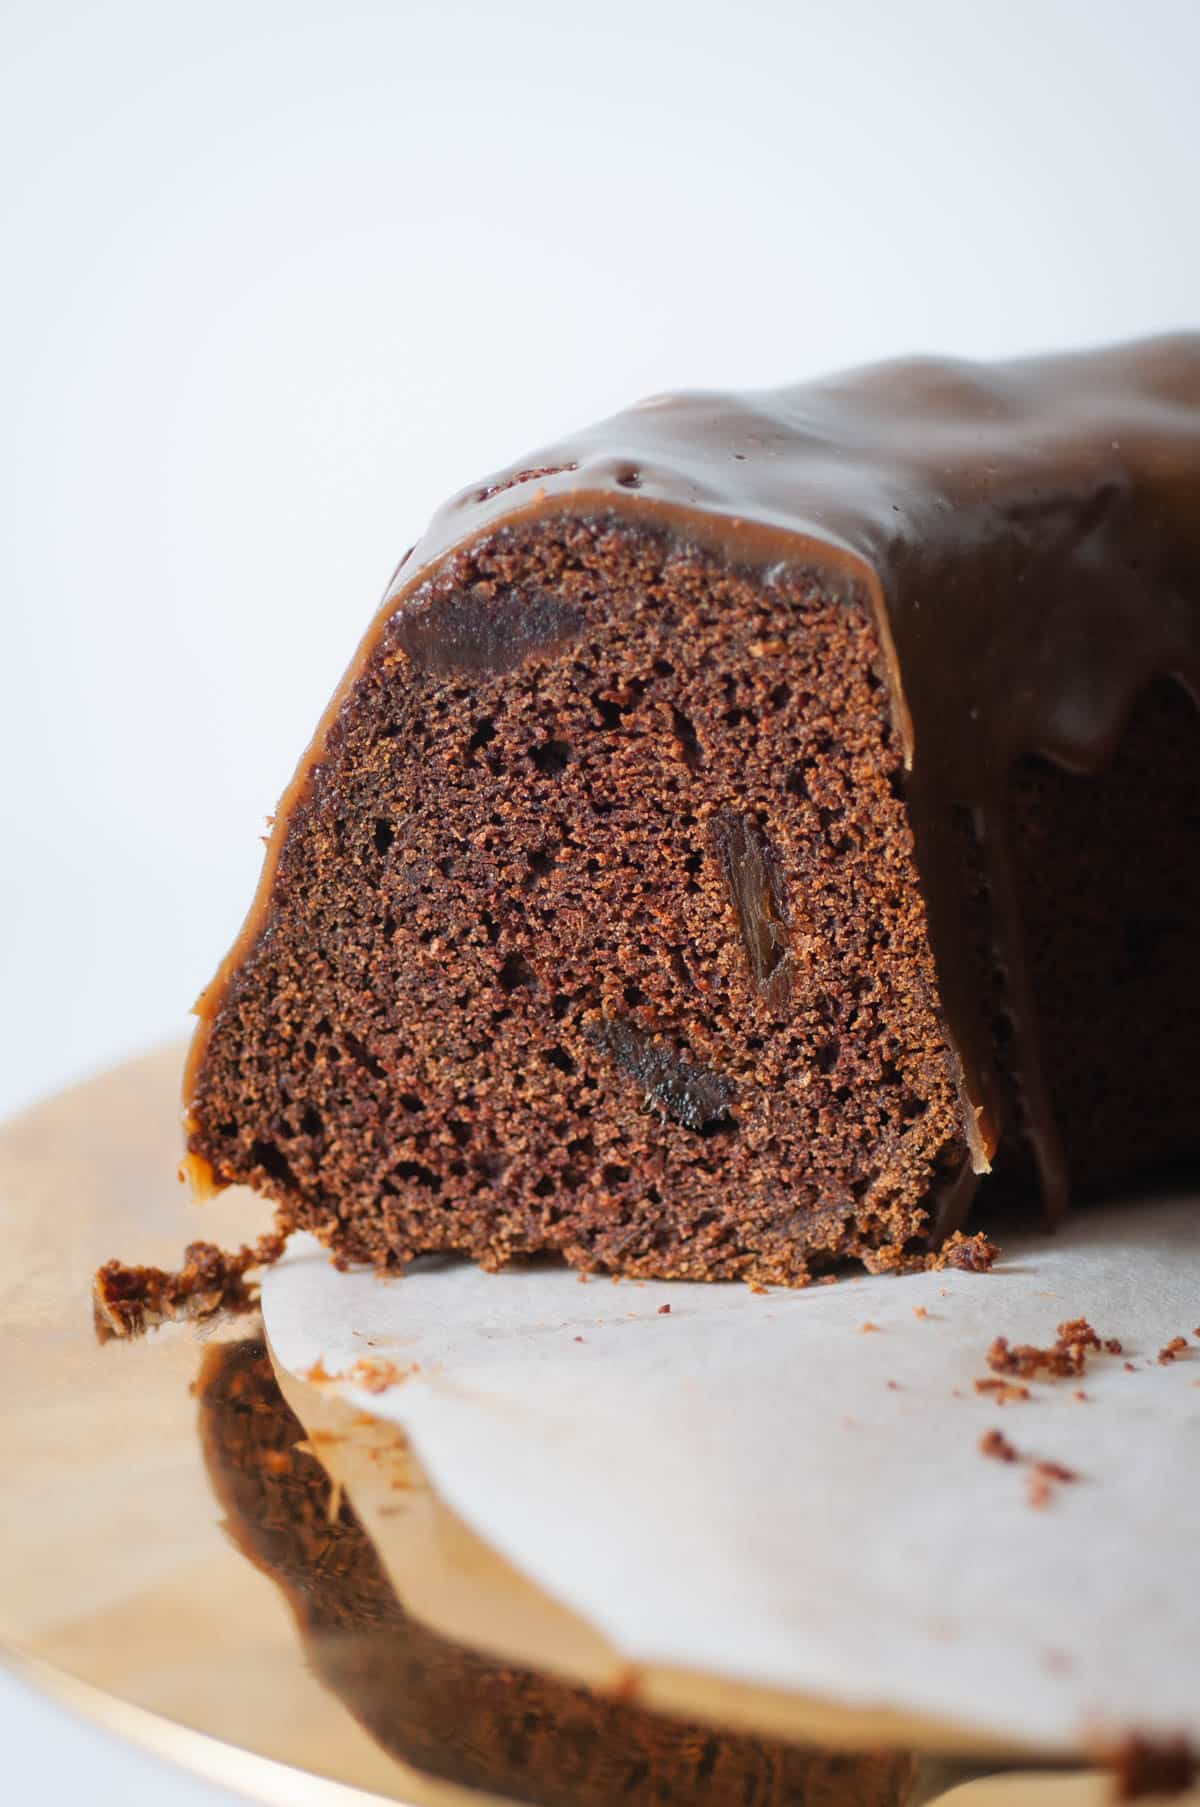 Gluten free date cake is naturally sweetened. Date cake gets its dark toned color from coffee.